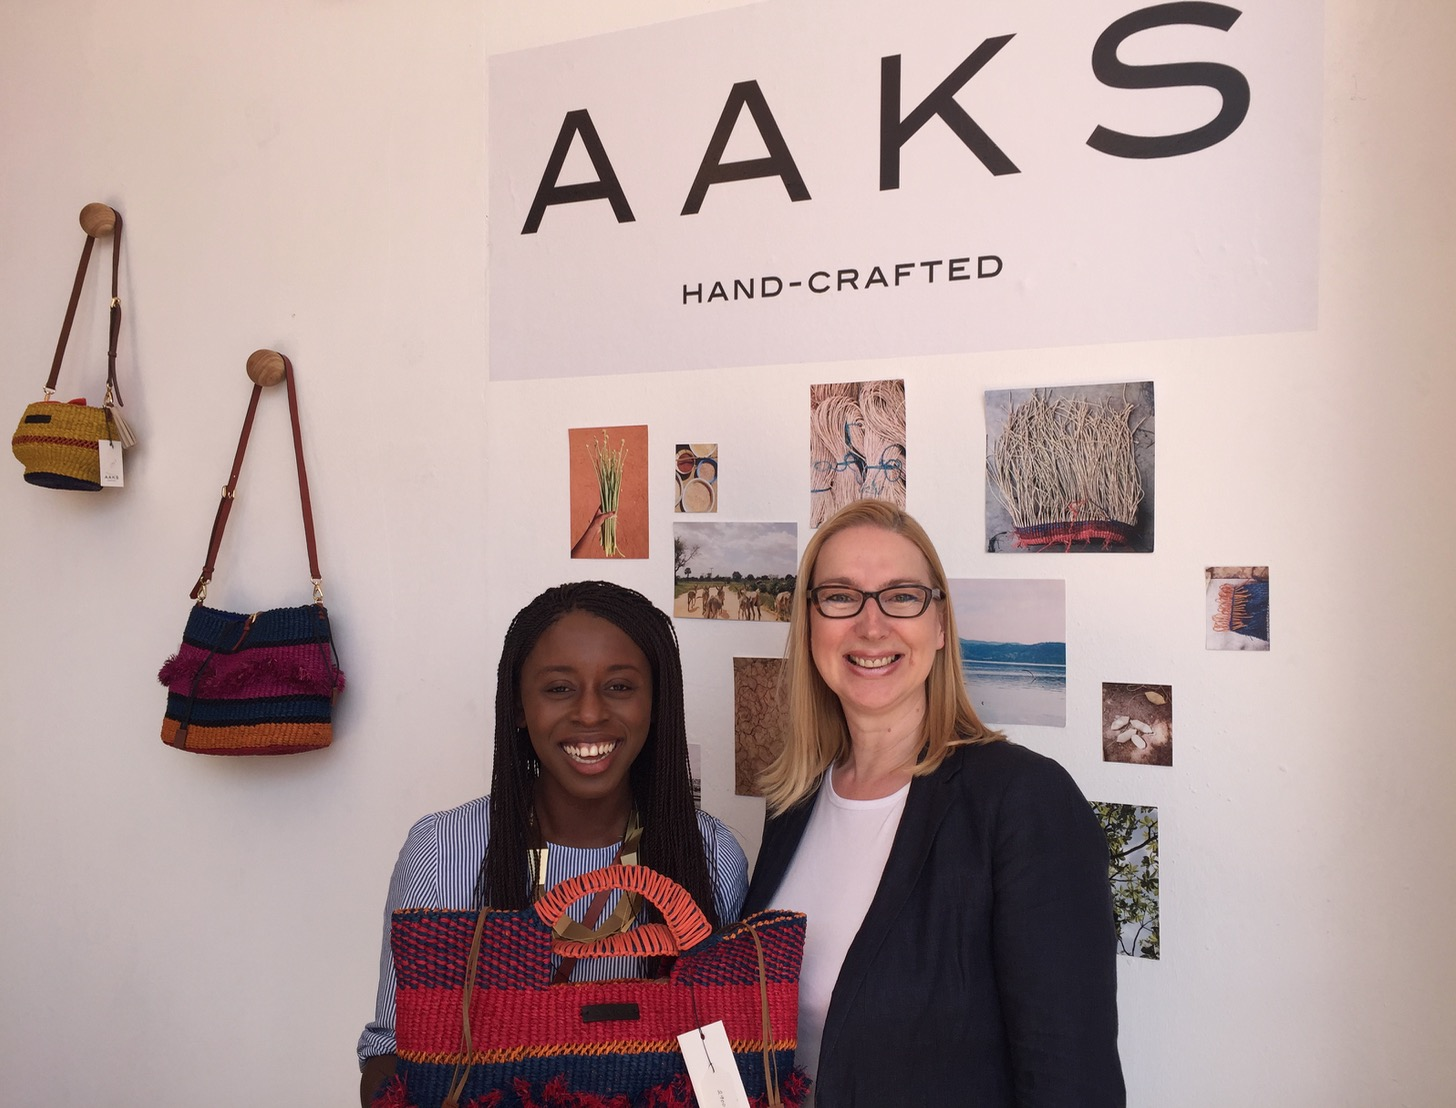 Celebrating a love of beautiful handmade, luxury woven handbags and accessories from Ghana,  AAKS  founder and ceo  Akosua Afriyie-Kumi  chats to Melanie Hawken about her first time exhibiting at the fair and her wonderful new range.